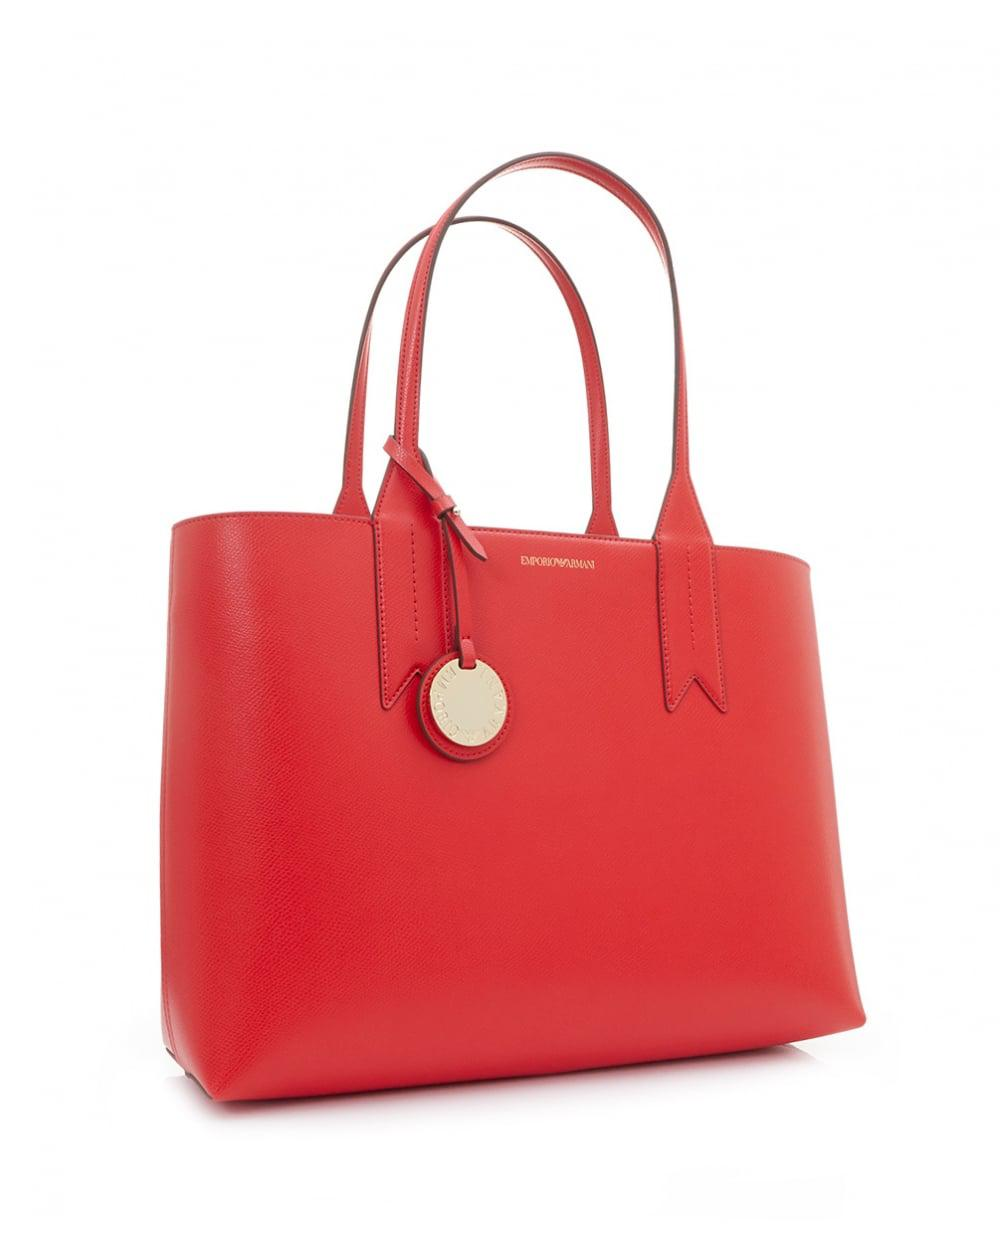 27b471355986 Lyst - Emporio Armani Frida Large Eco Leather Shopper in Red